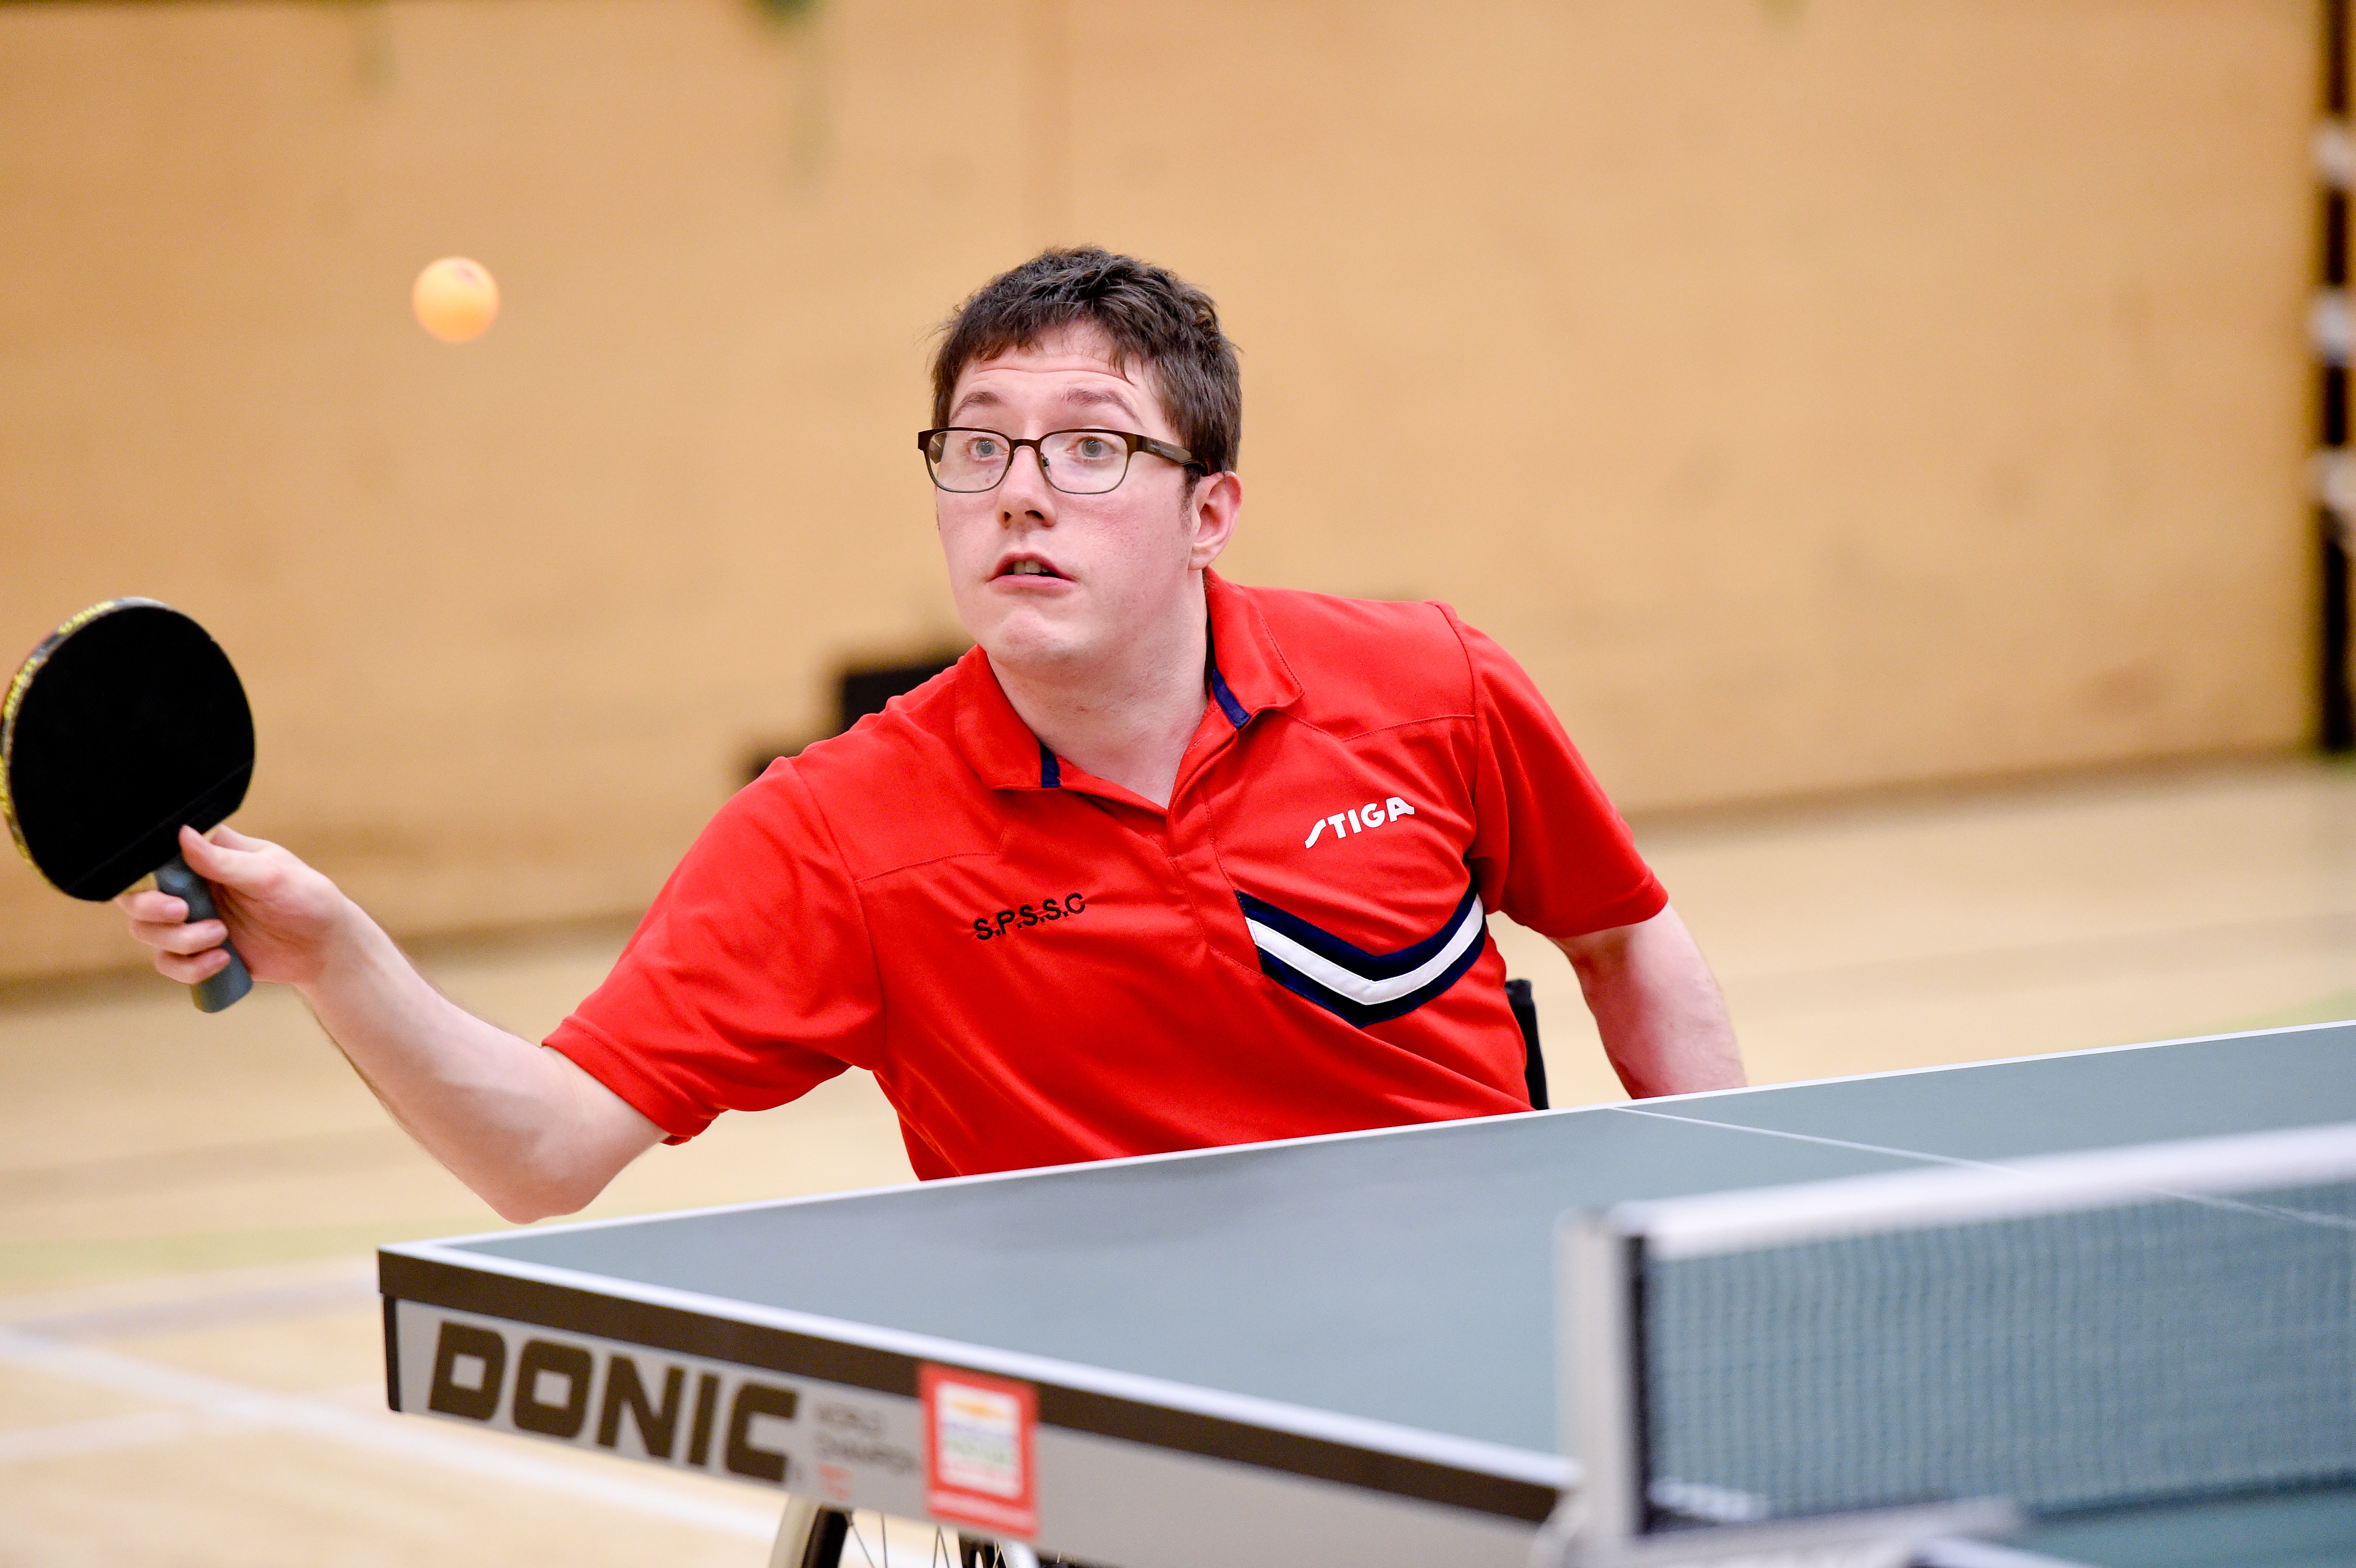 Wheelchair user playing table tennis